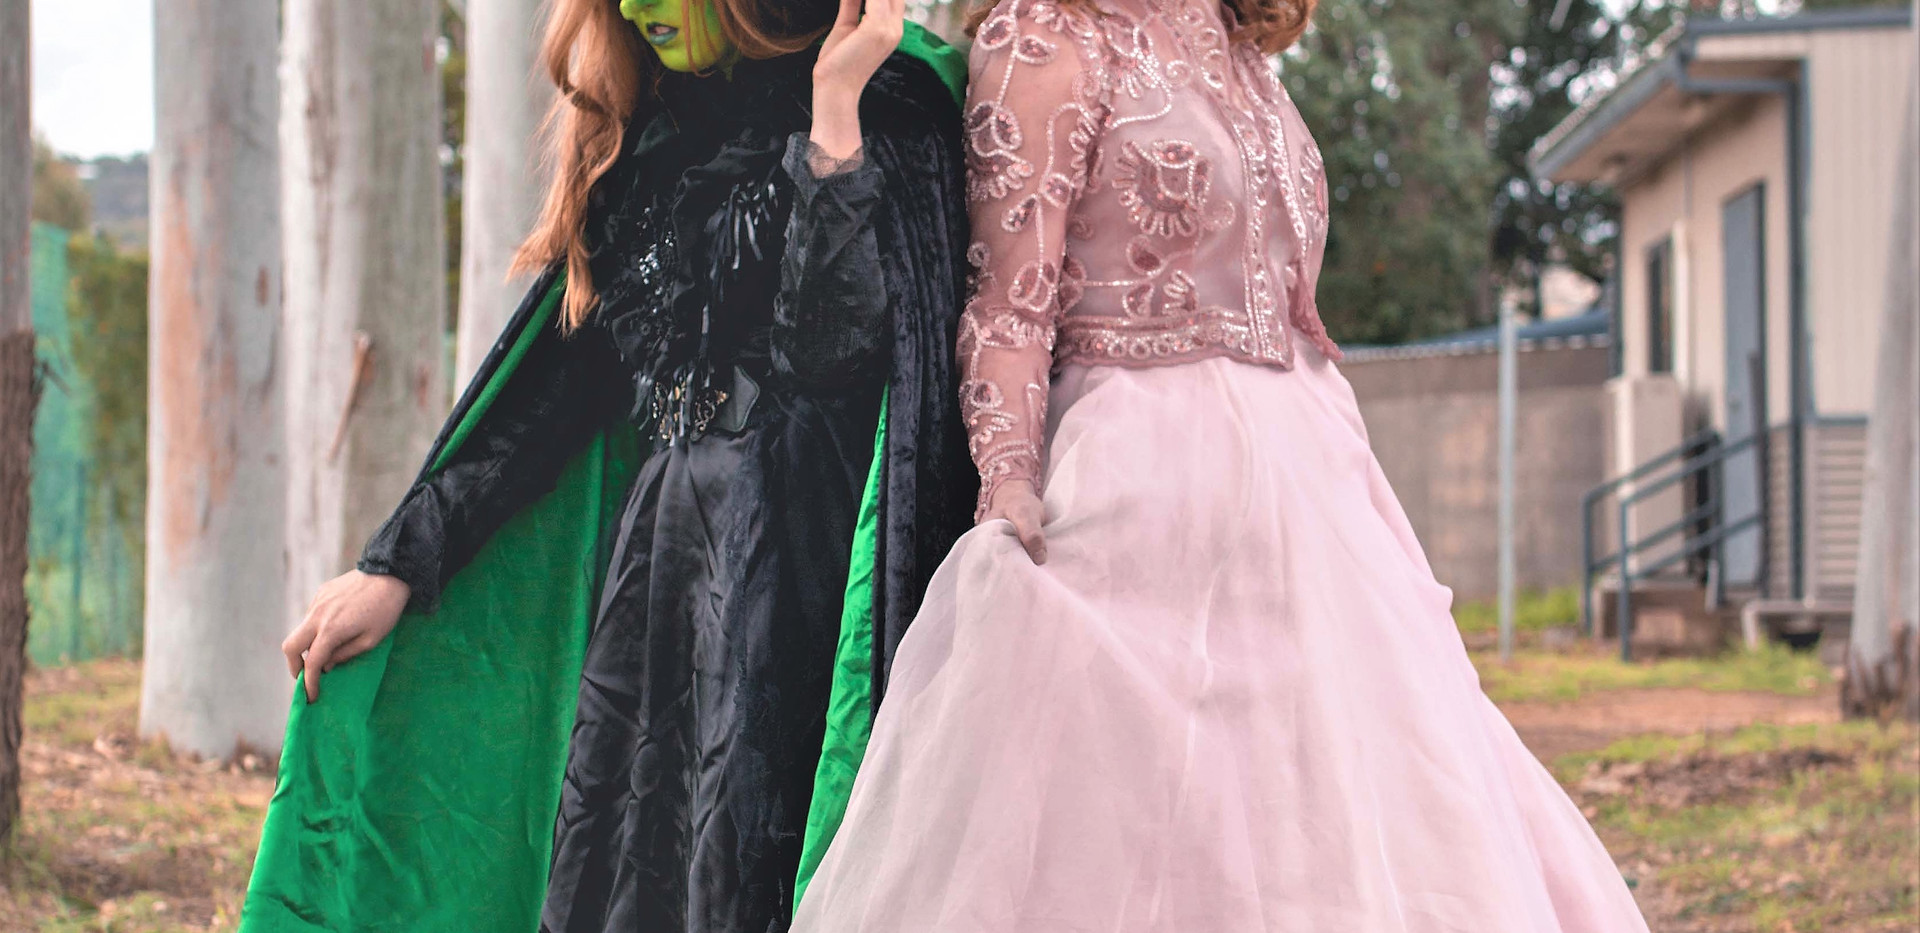 Glinda and witch.jpg